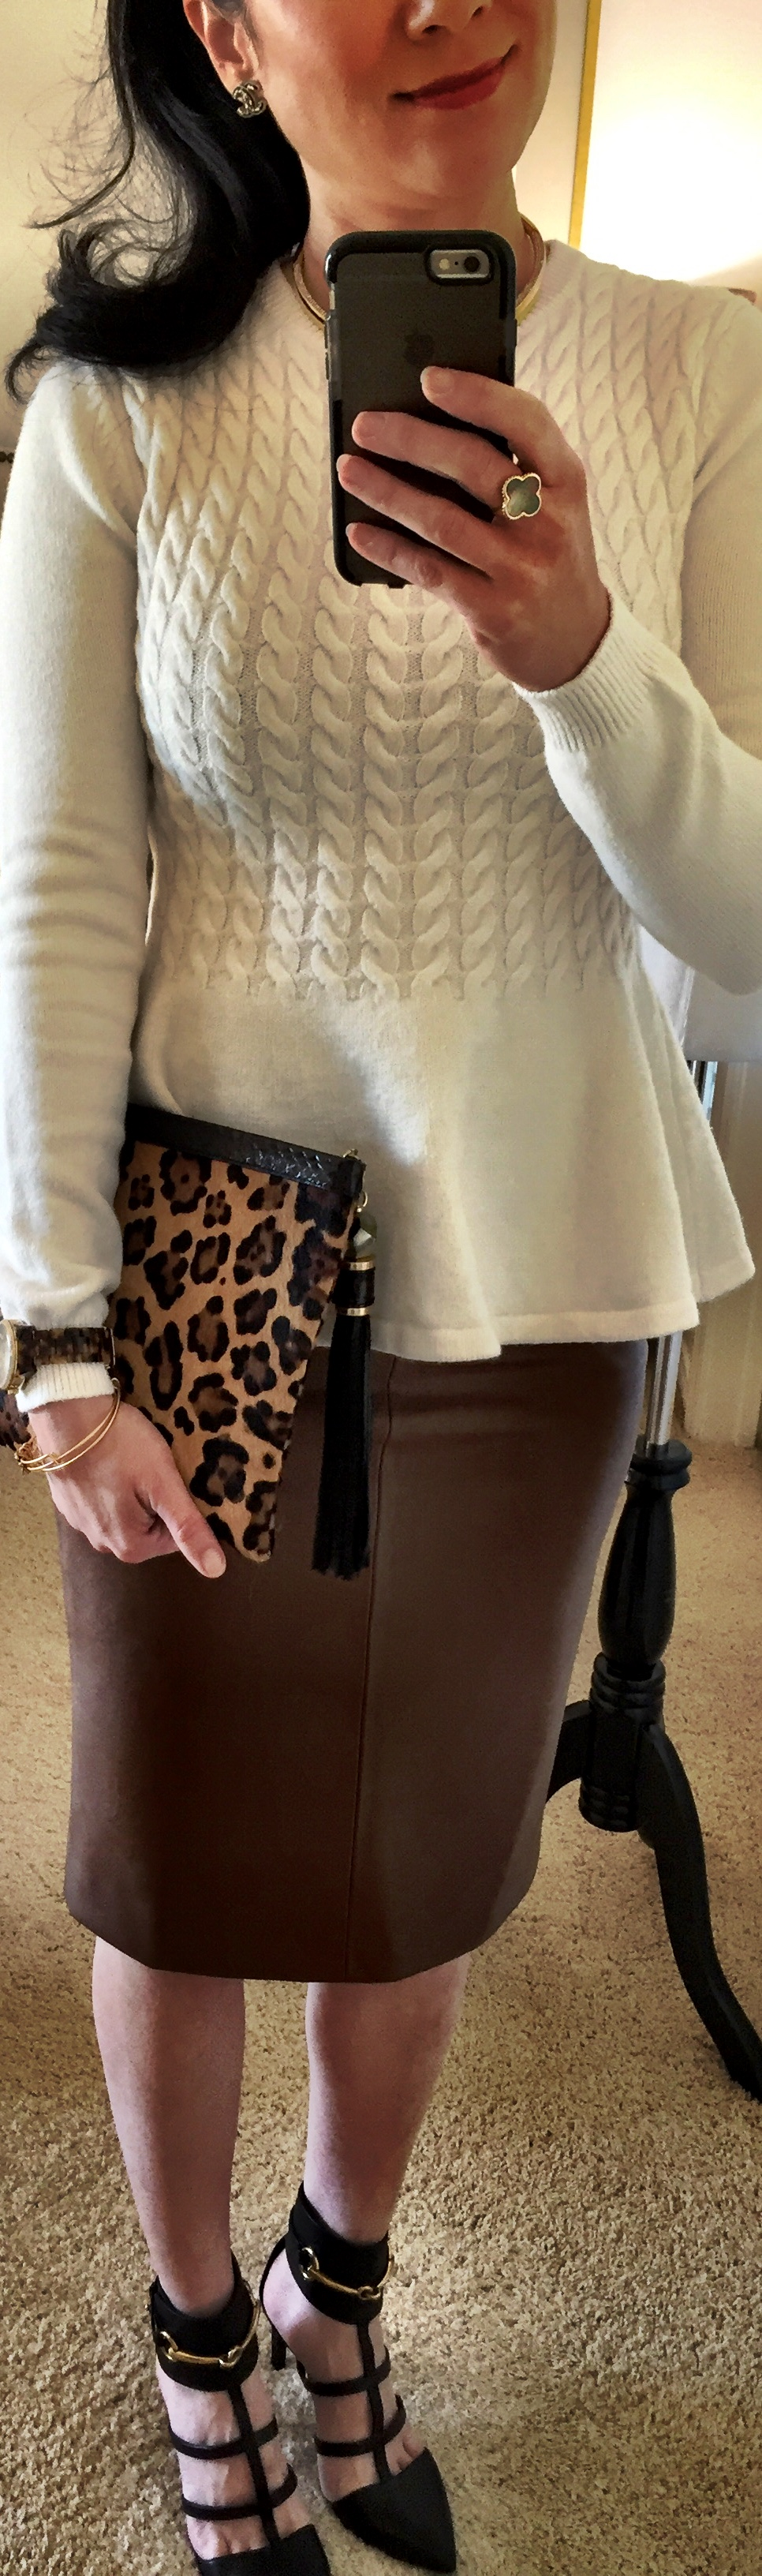 November 10, Ted Baker Peplum Sweater and faux Leather Skirt by Zara